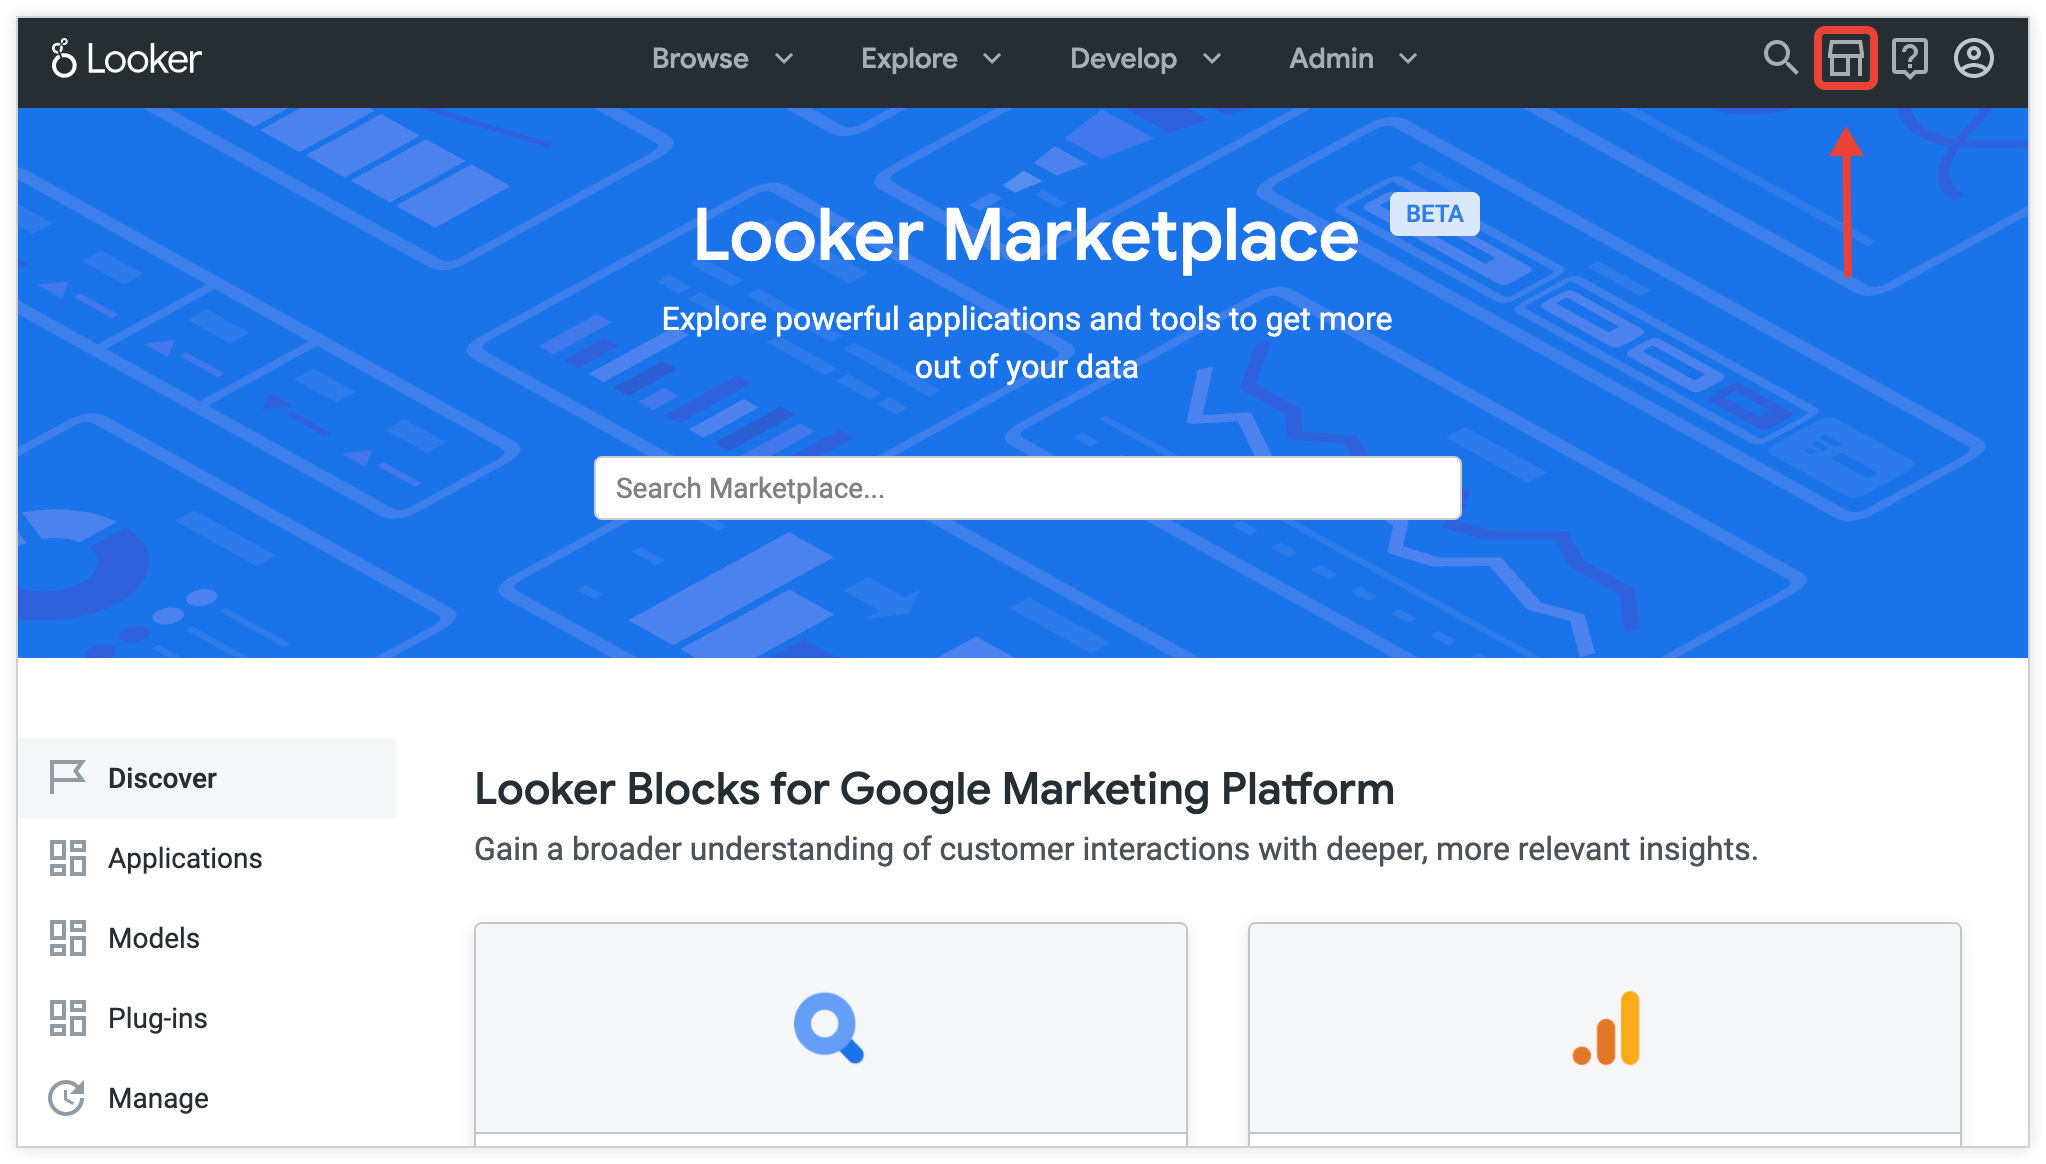 search for Looker Blocks